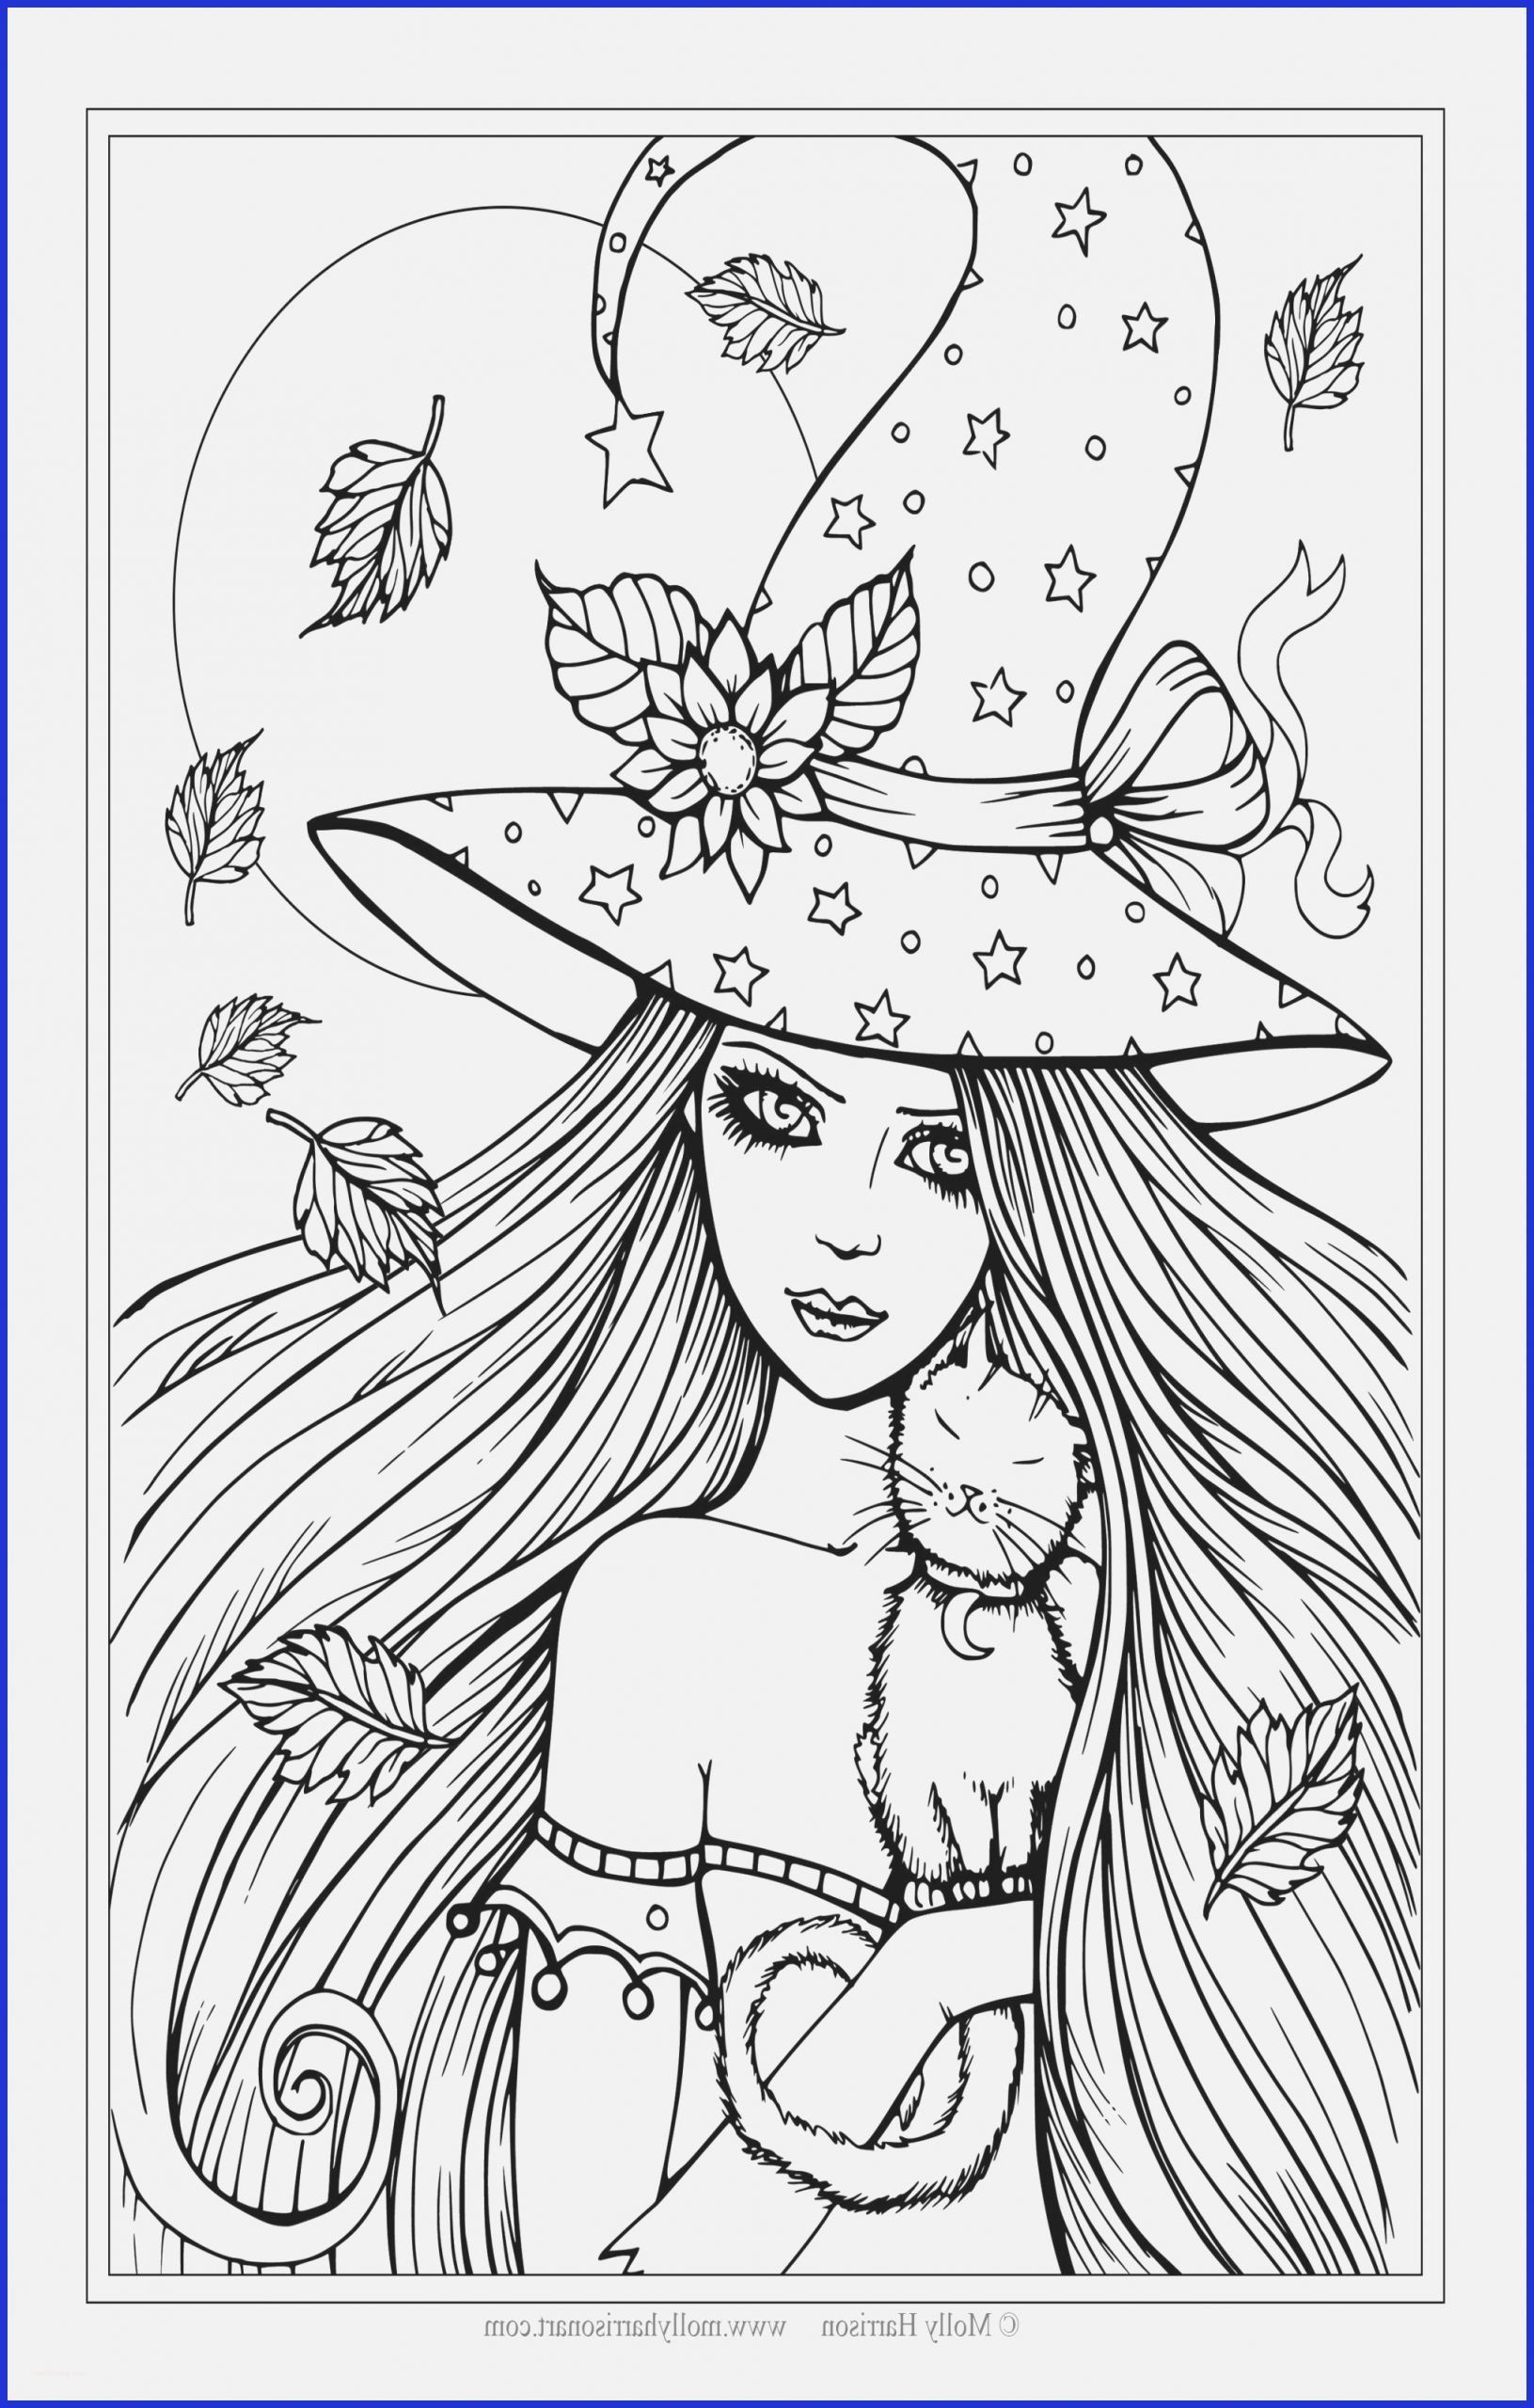 Free Coloring Pages For Girls Coloring Pages Girls Games Free Coloring Girl Games Xbox Witch Coloring Pages Coloring Pages For Girls Cool Coloring Pages